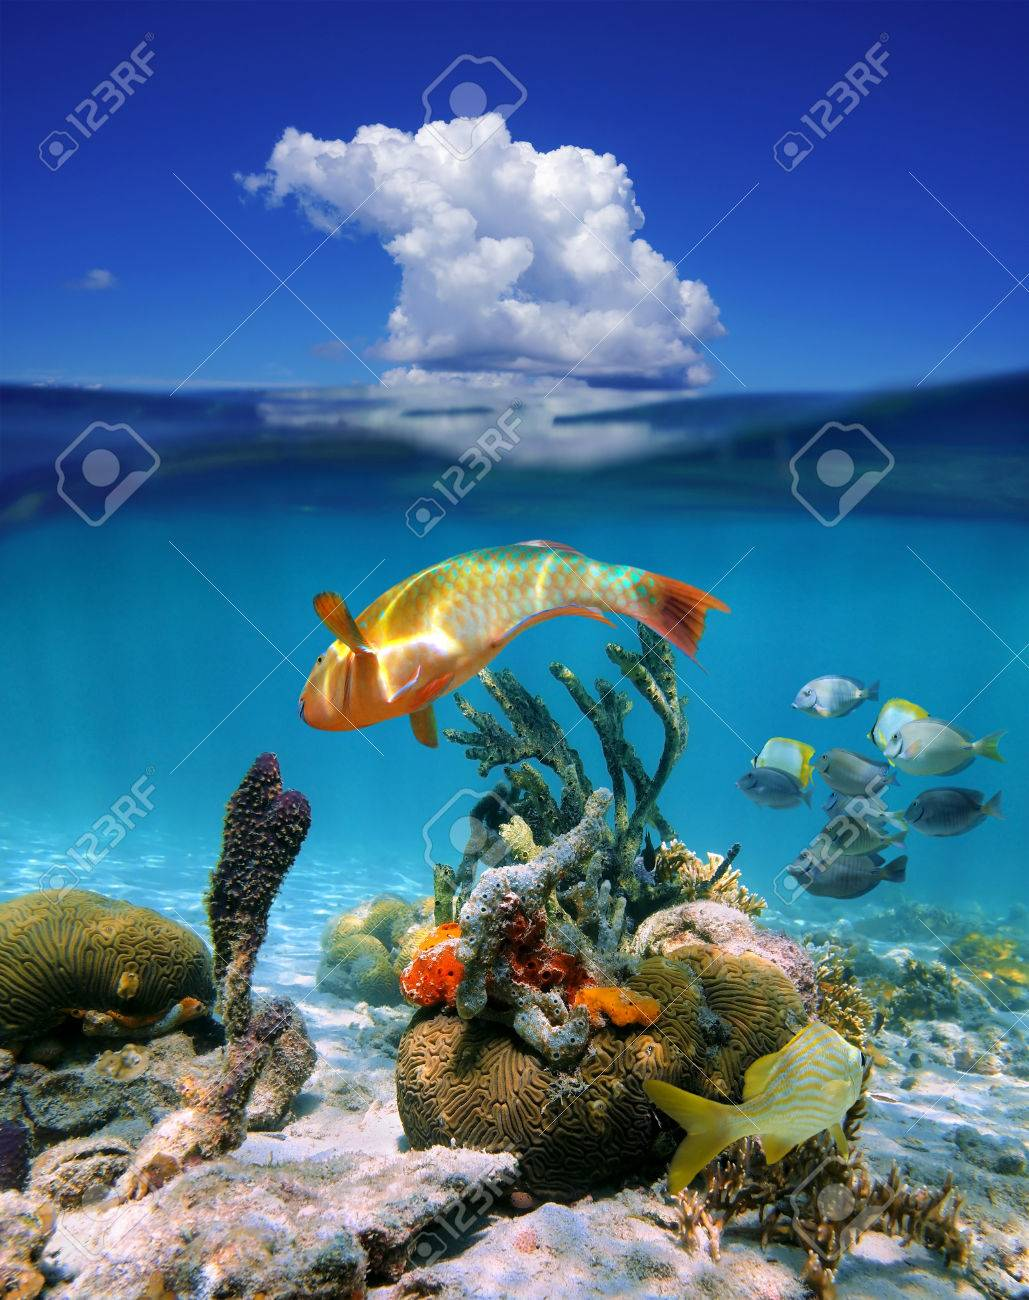 Above And Below Stock Photos. Royalty Free Above And Below Images